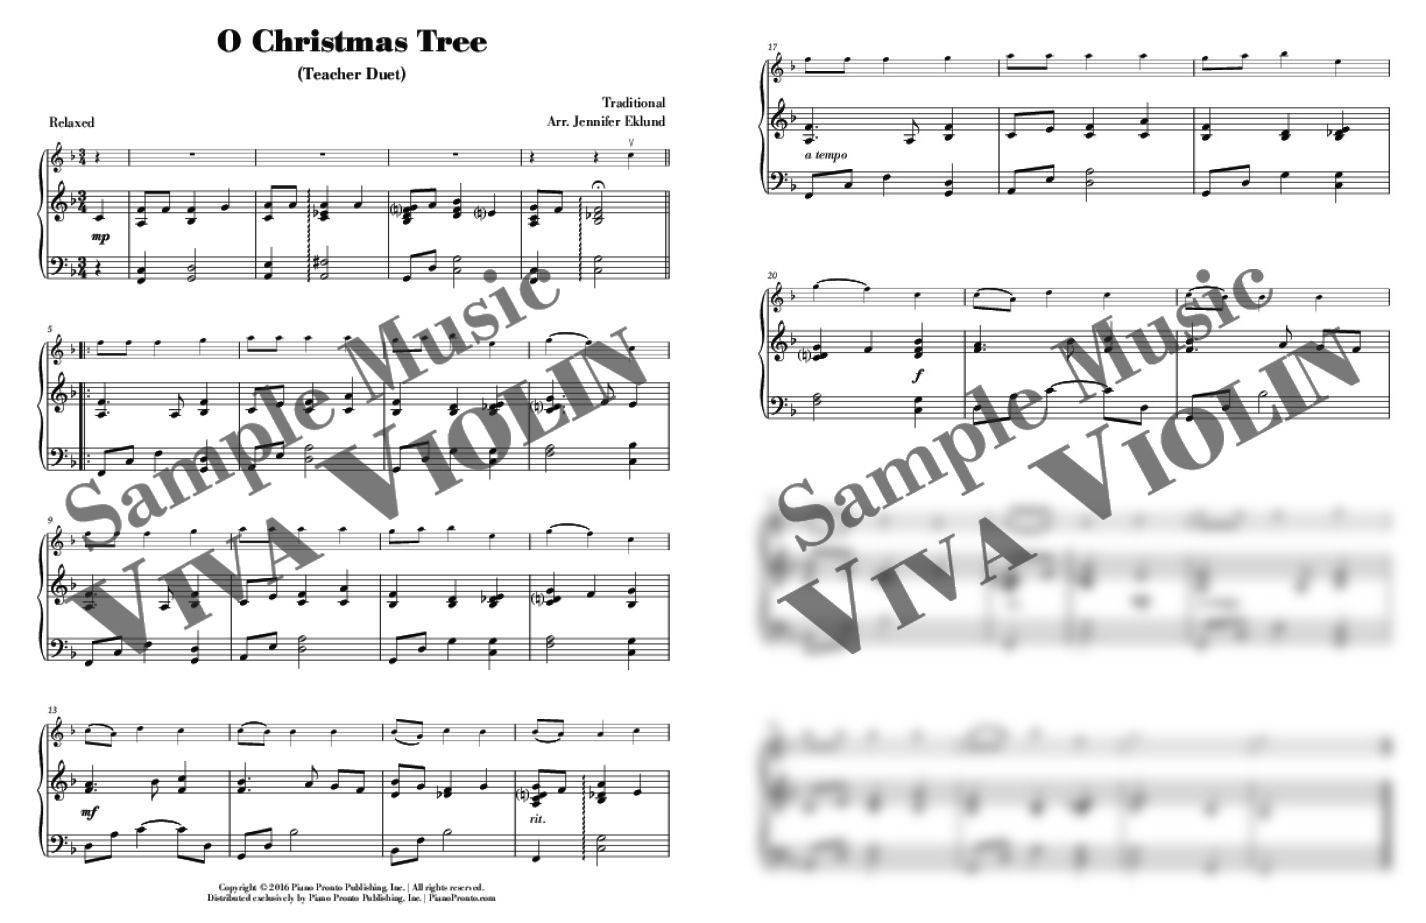 O Christmas Tree Music Sheet Photo Albums - Fabulous Homes Interior ...